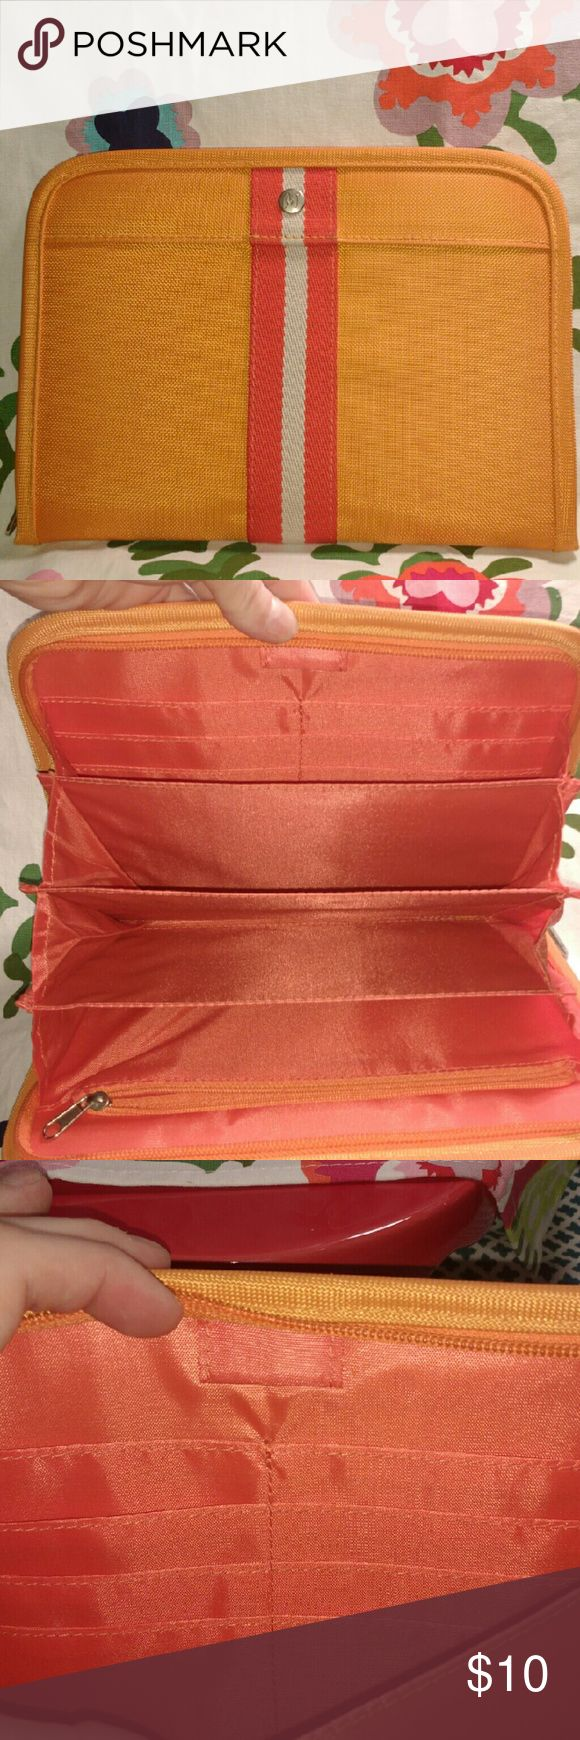 Orange Organizer Orange Filer with 4 pockets, 1 zipper pocket, 8 card holder pockets and a place to hold your pen. Bags